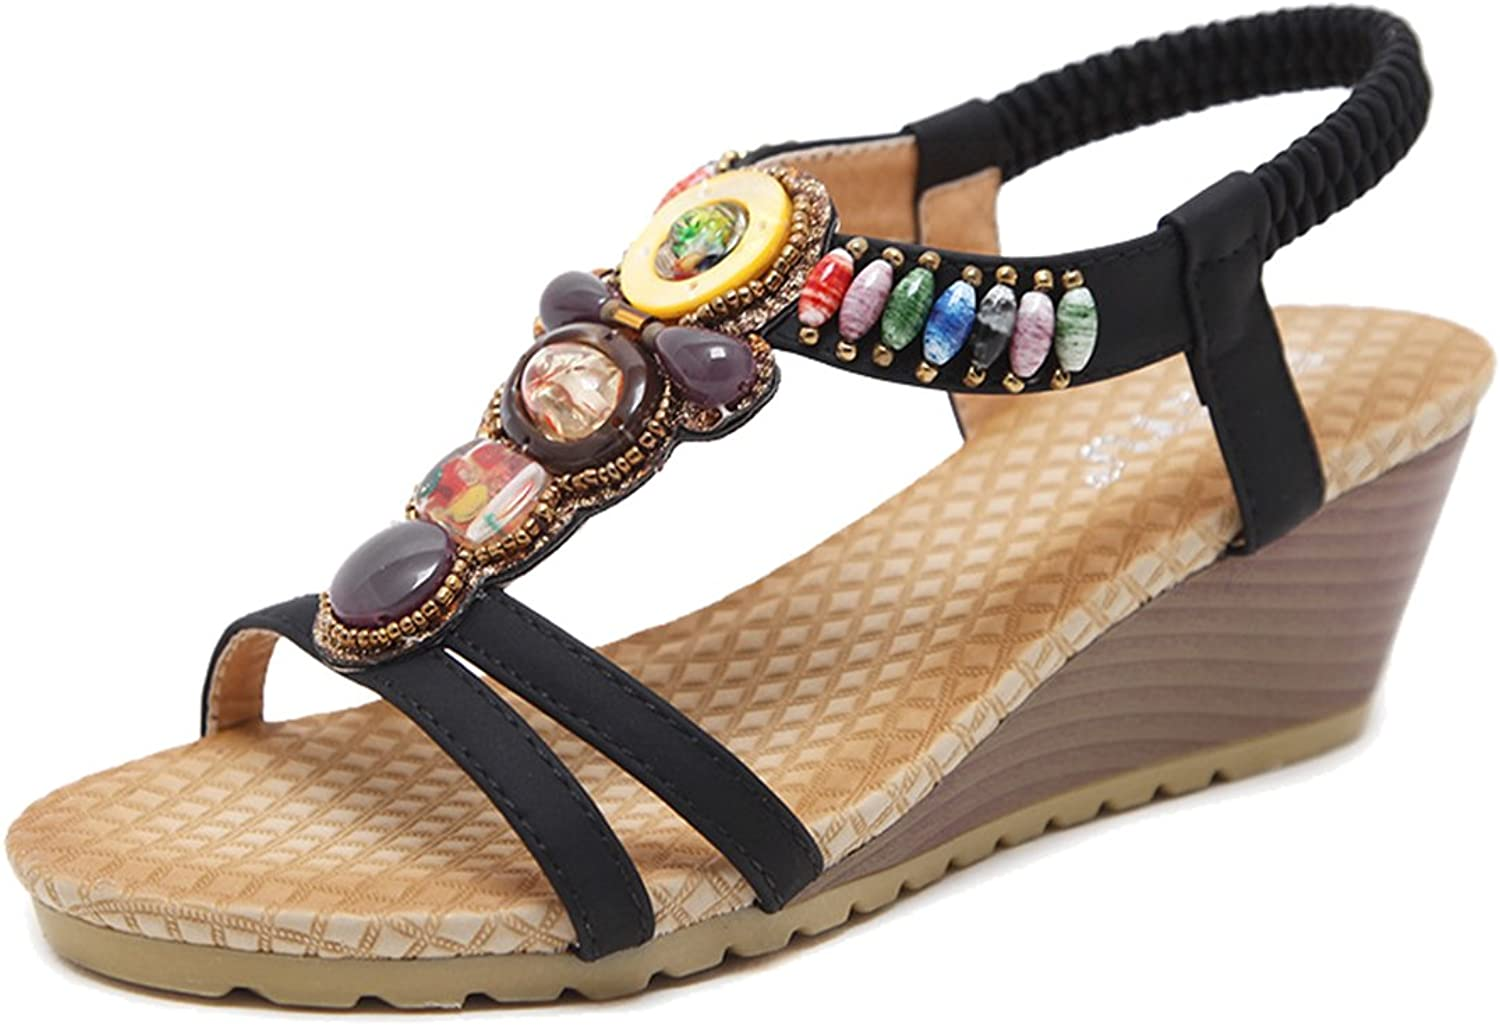 Femaroly Ethnic Female Sandals Wedge Large Size Women's Walking shoes